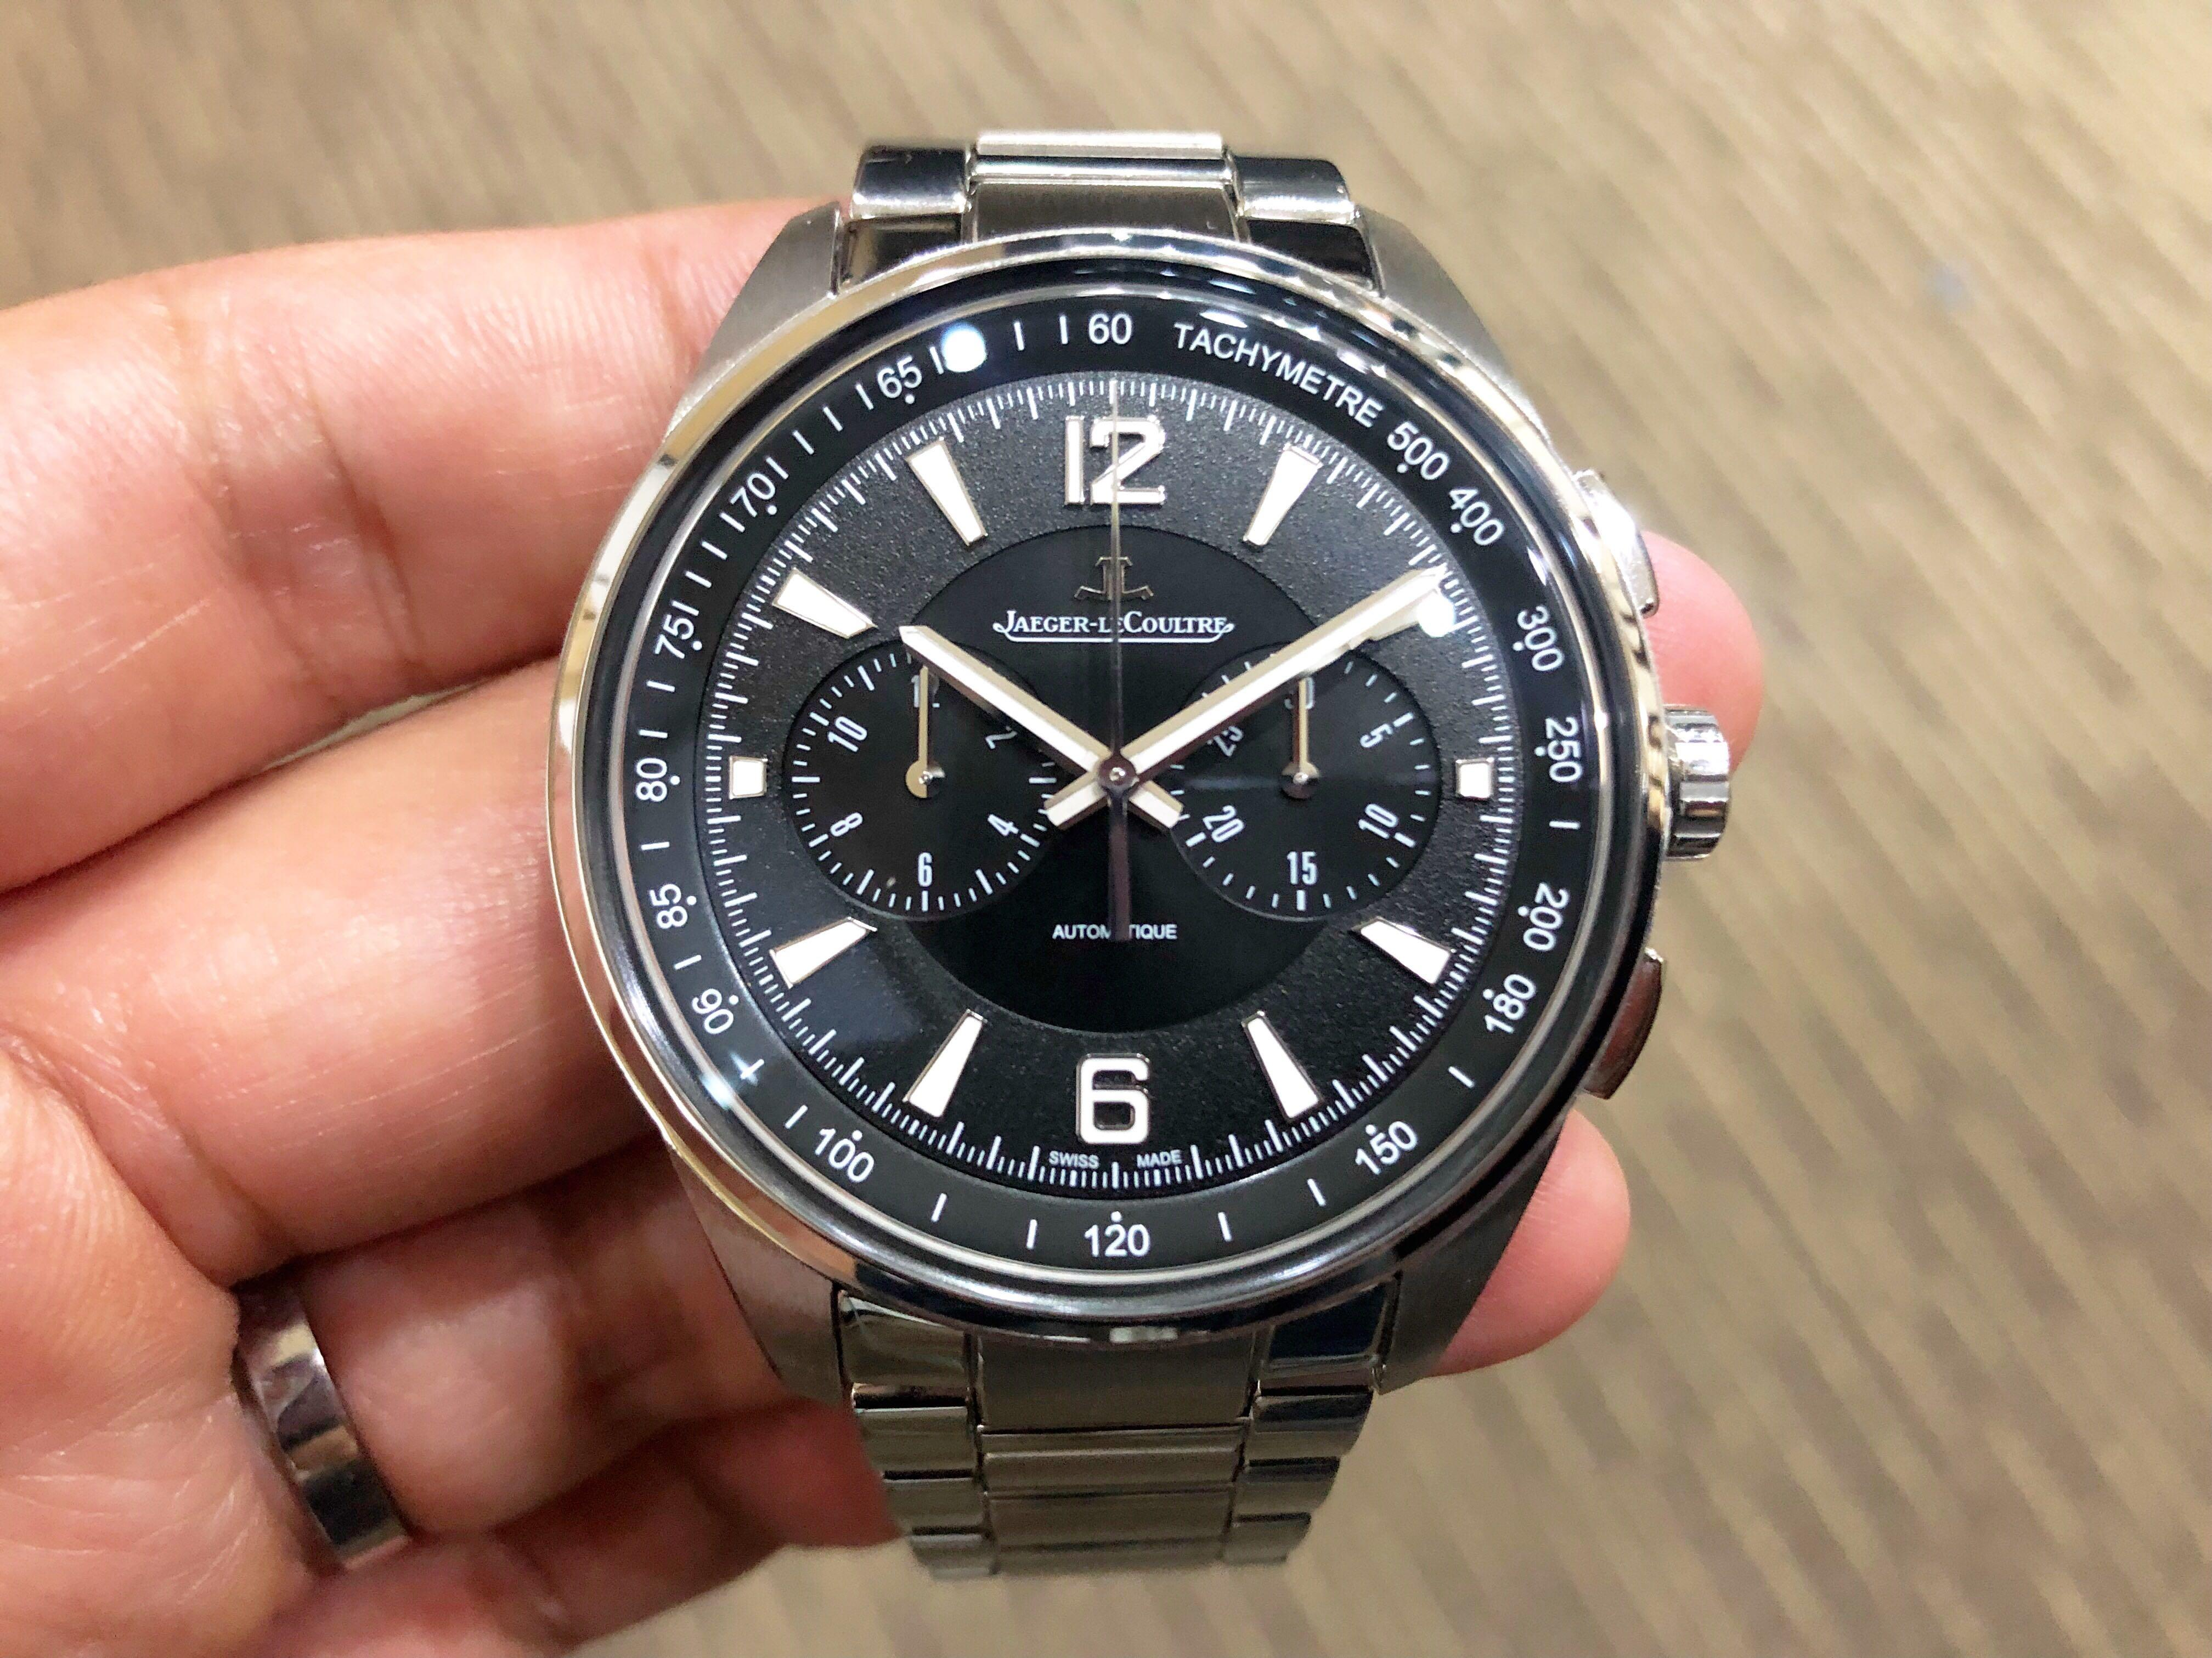 Like New Complete Sep 2019 Jaeger LeCoultre Polaris Chronograph Q9028170 8 Years JLC Warranty